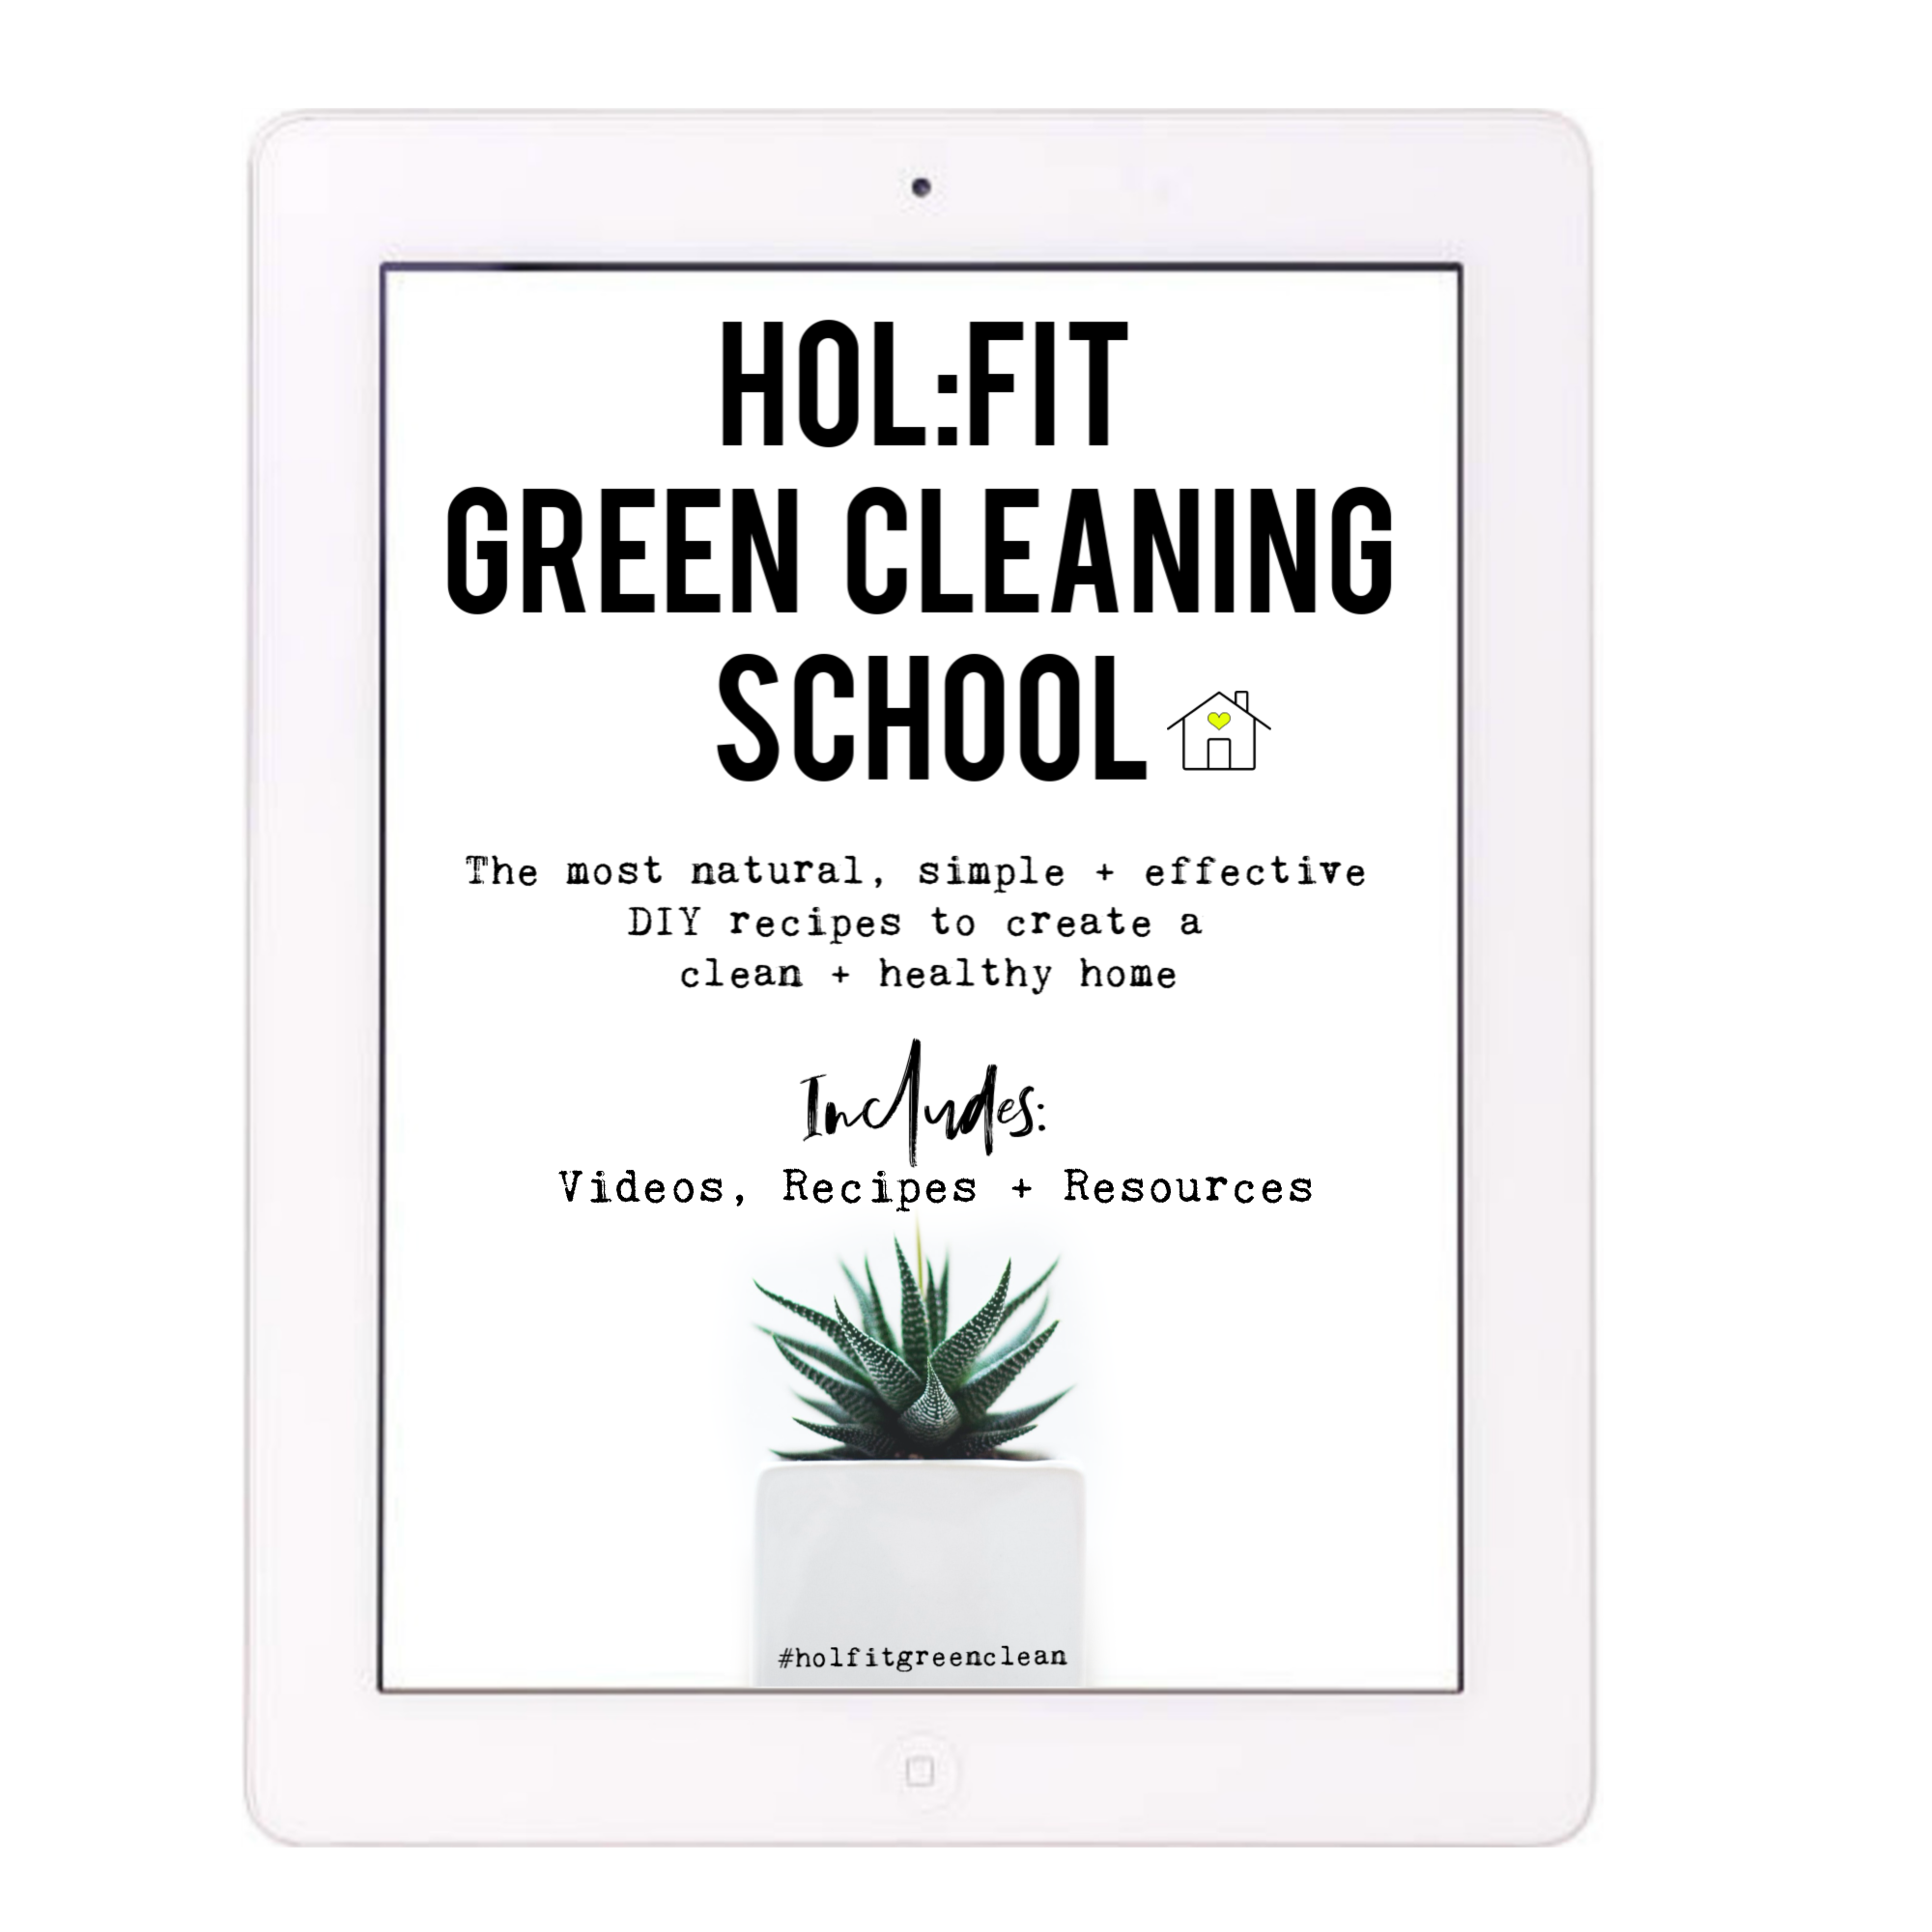 green cleaning ebook - Everything you need to never have to buy another cleaner again! Over 40 pages of content including all the DIY recipes, videos of how to make, shopping lists etc.